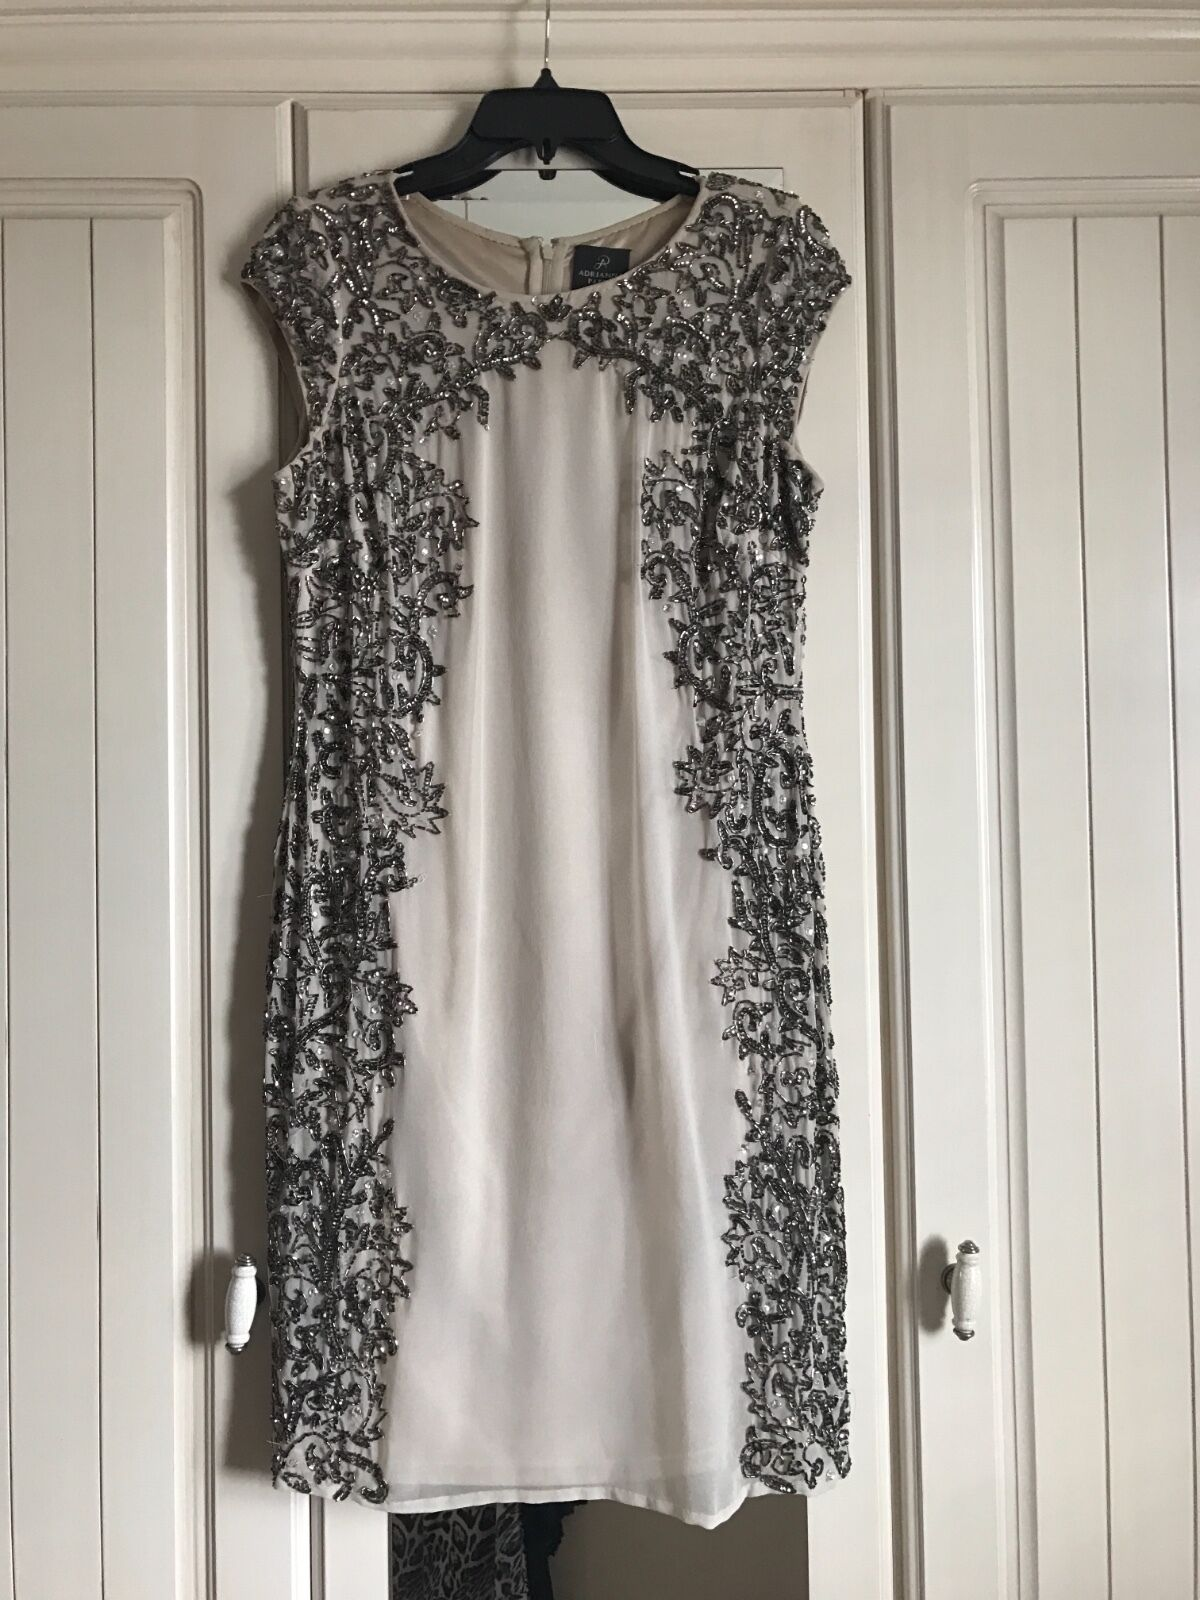 Adrianna Papell nude embellished dress- Größe 14- great condition